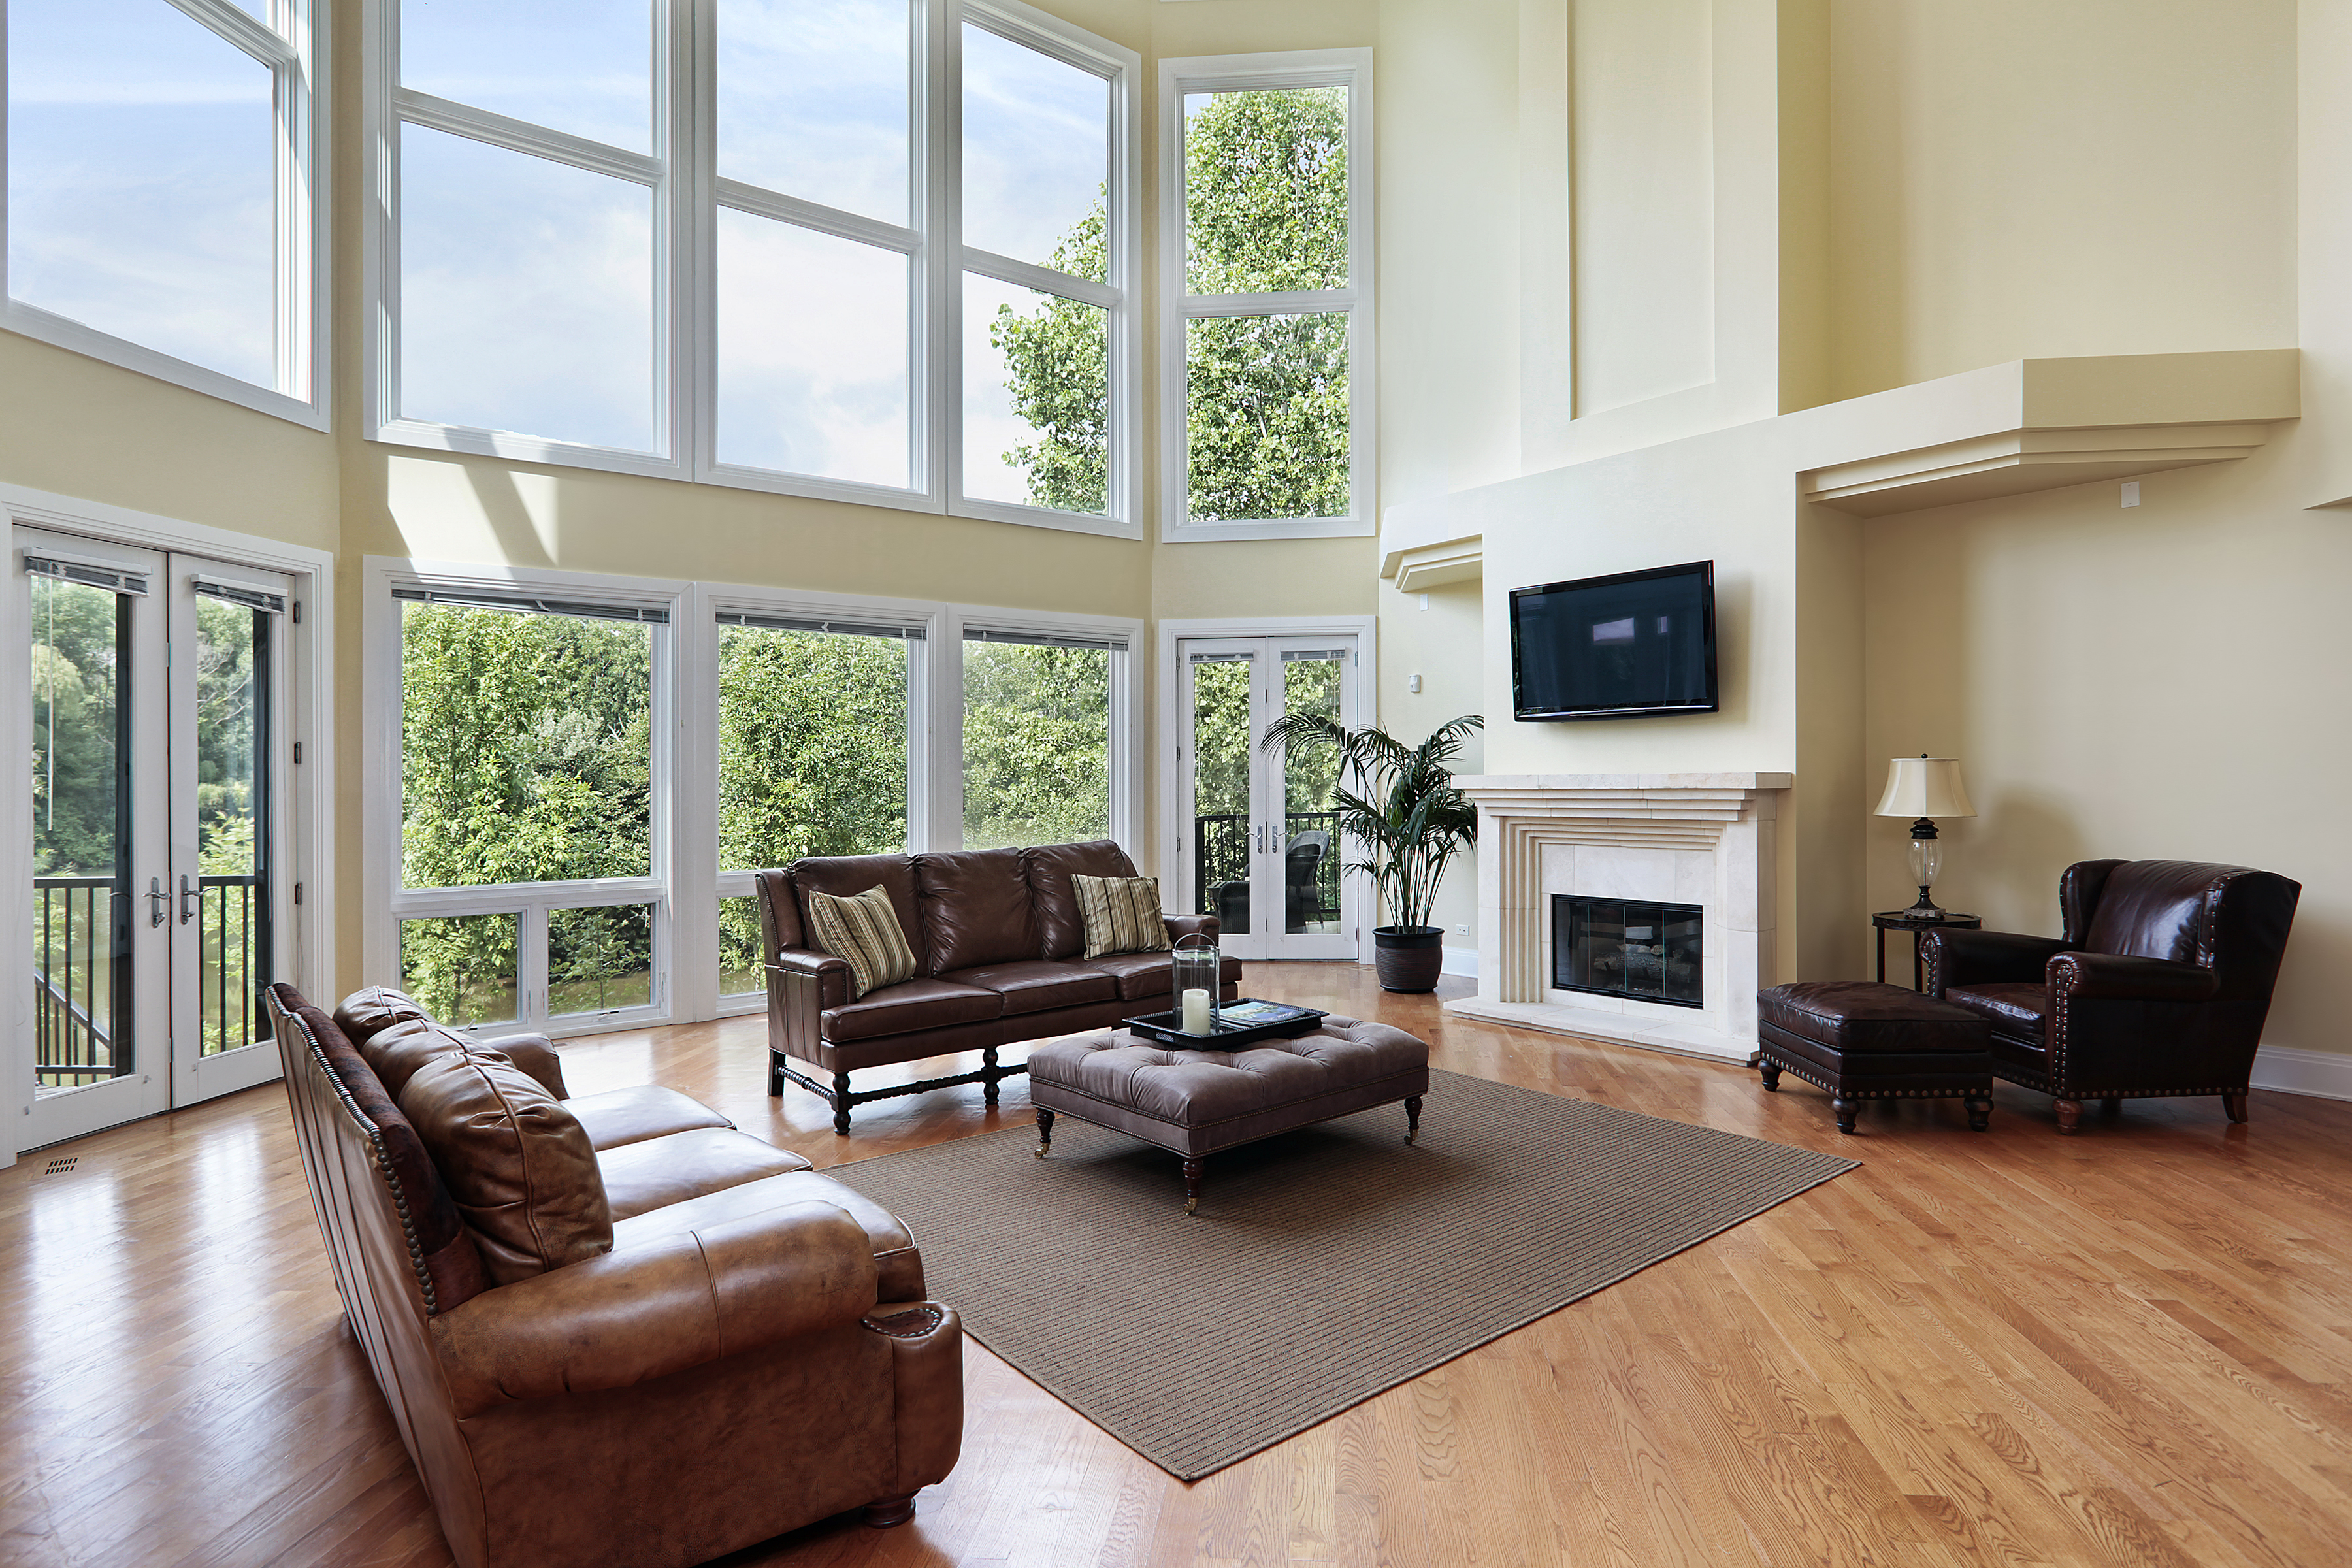 Home for sale in Naperville and the suburbs